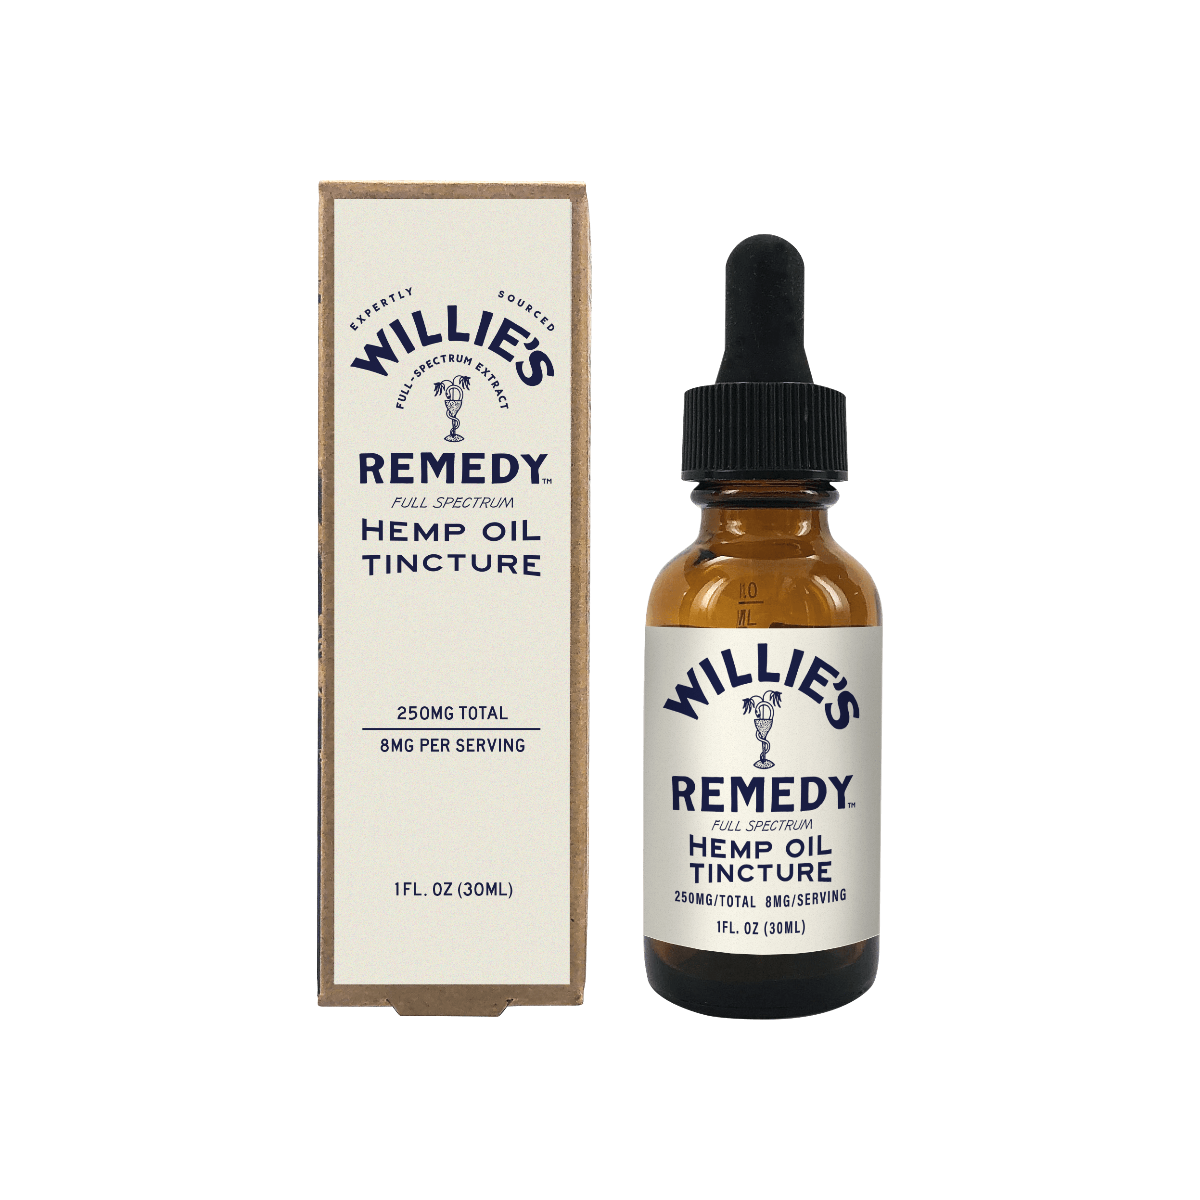 Willie's Remedy Full Spectrum Hemp Oil Tincture